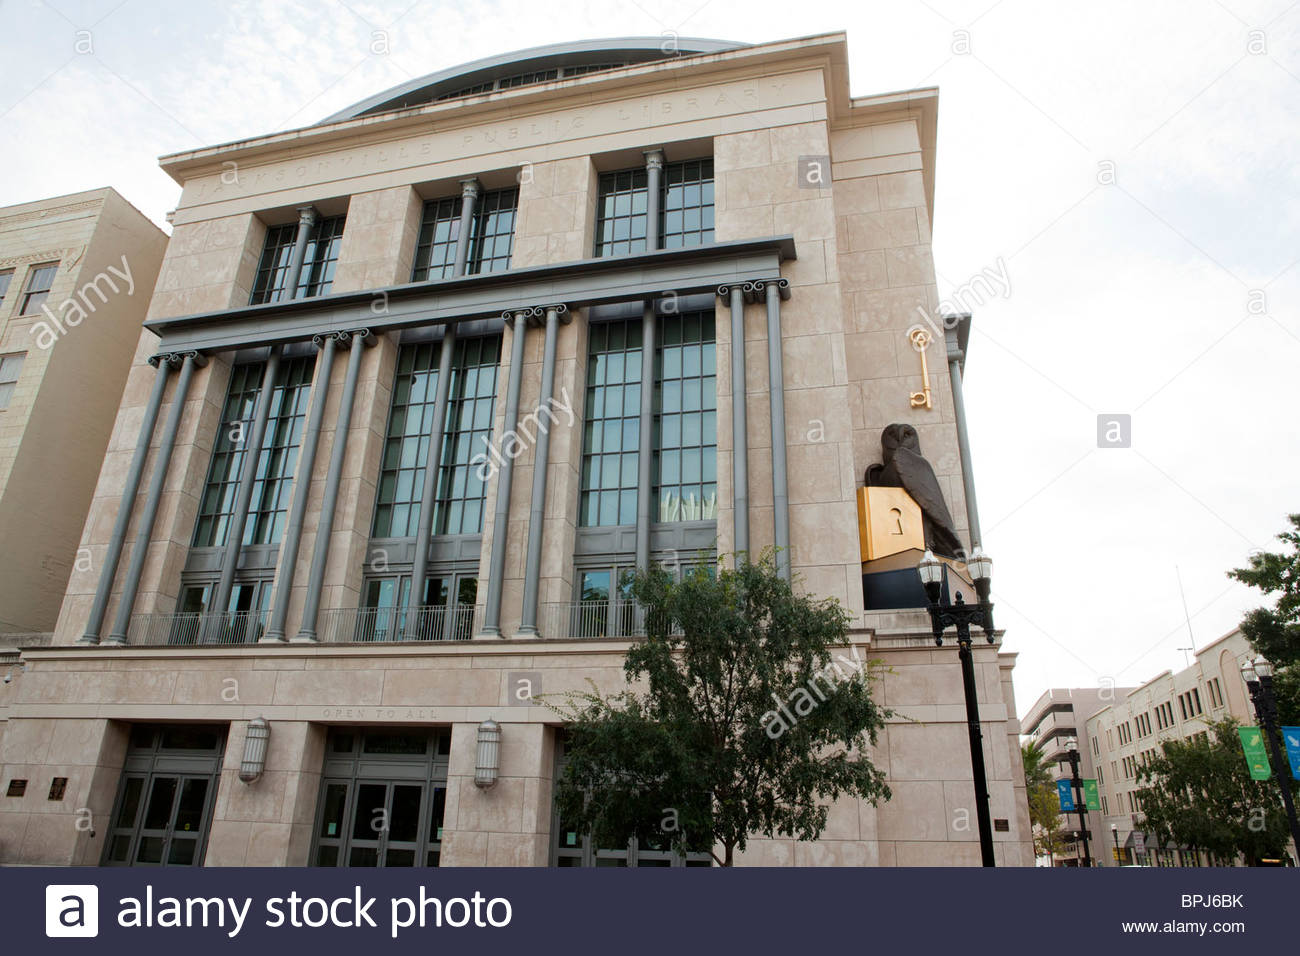 Jacksonville Public Library Florida High Resolution Stock Photography and  Images - Alamy